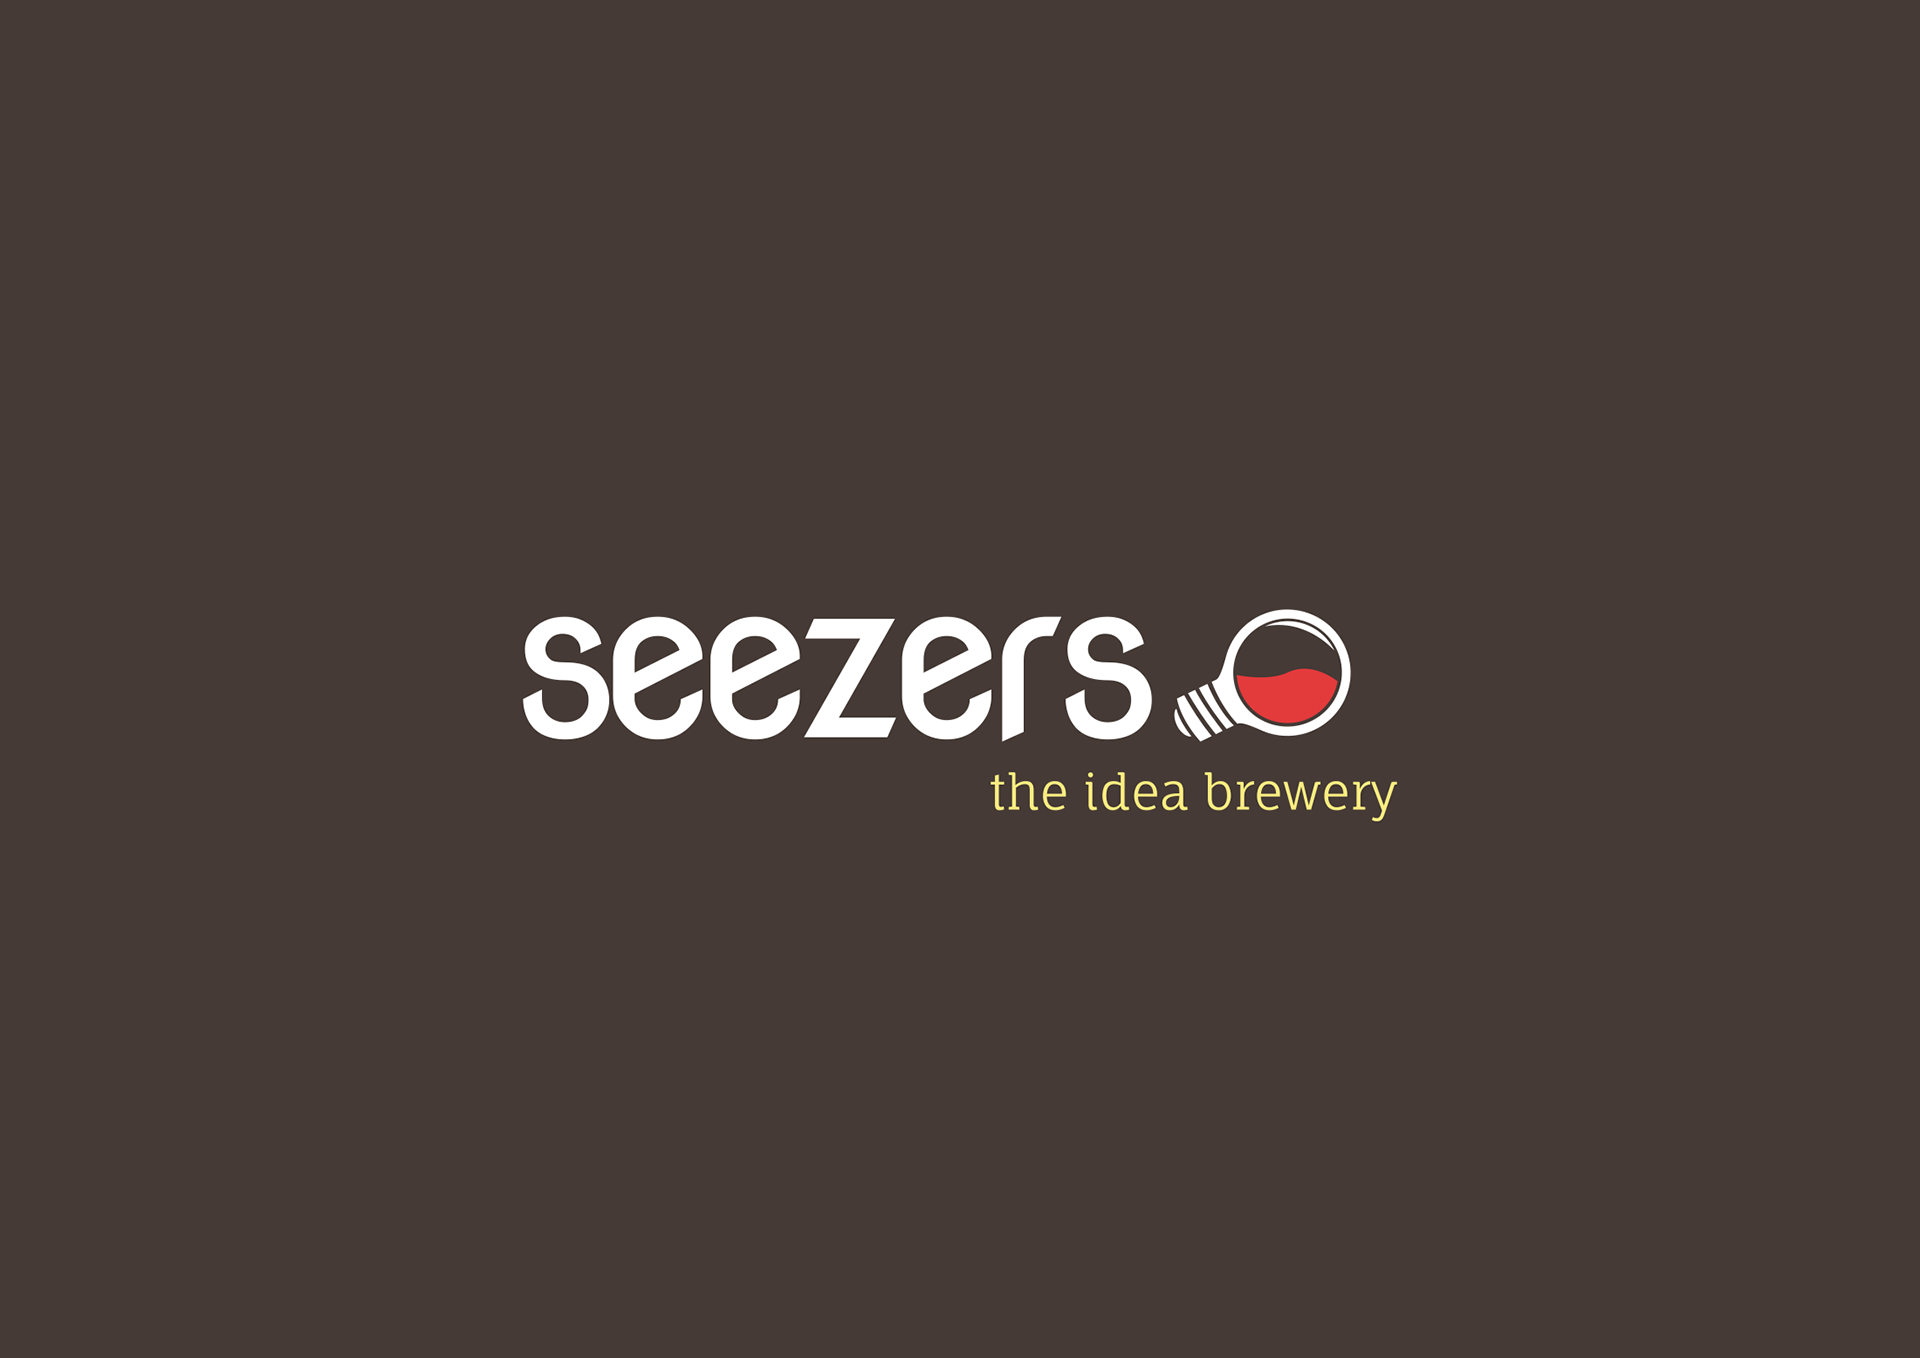 Seezers logo in white on black